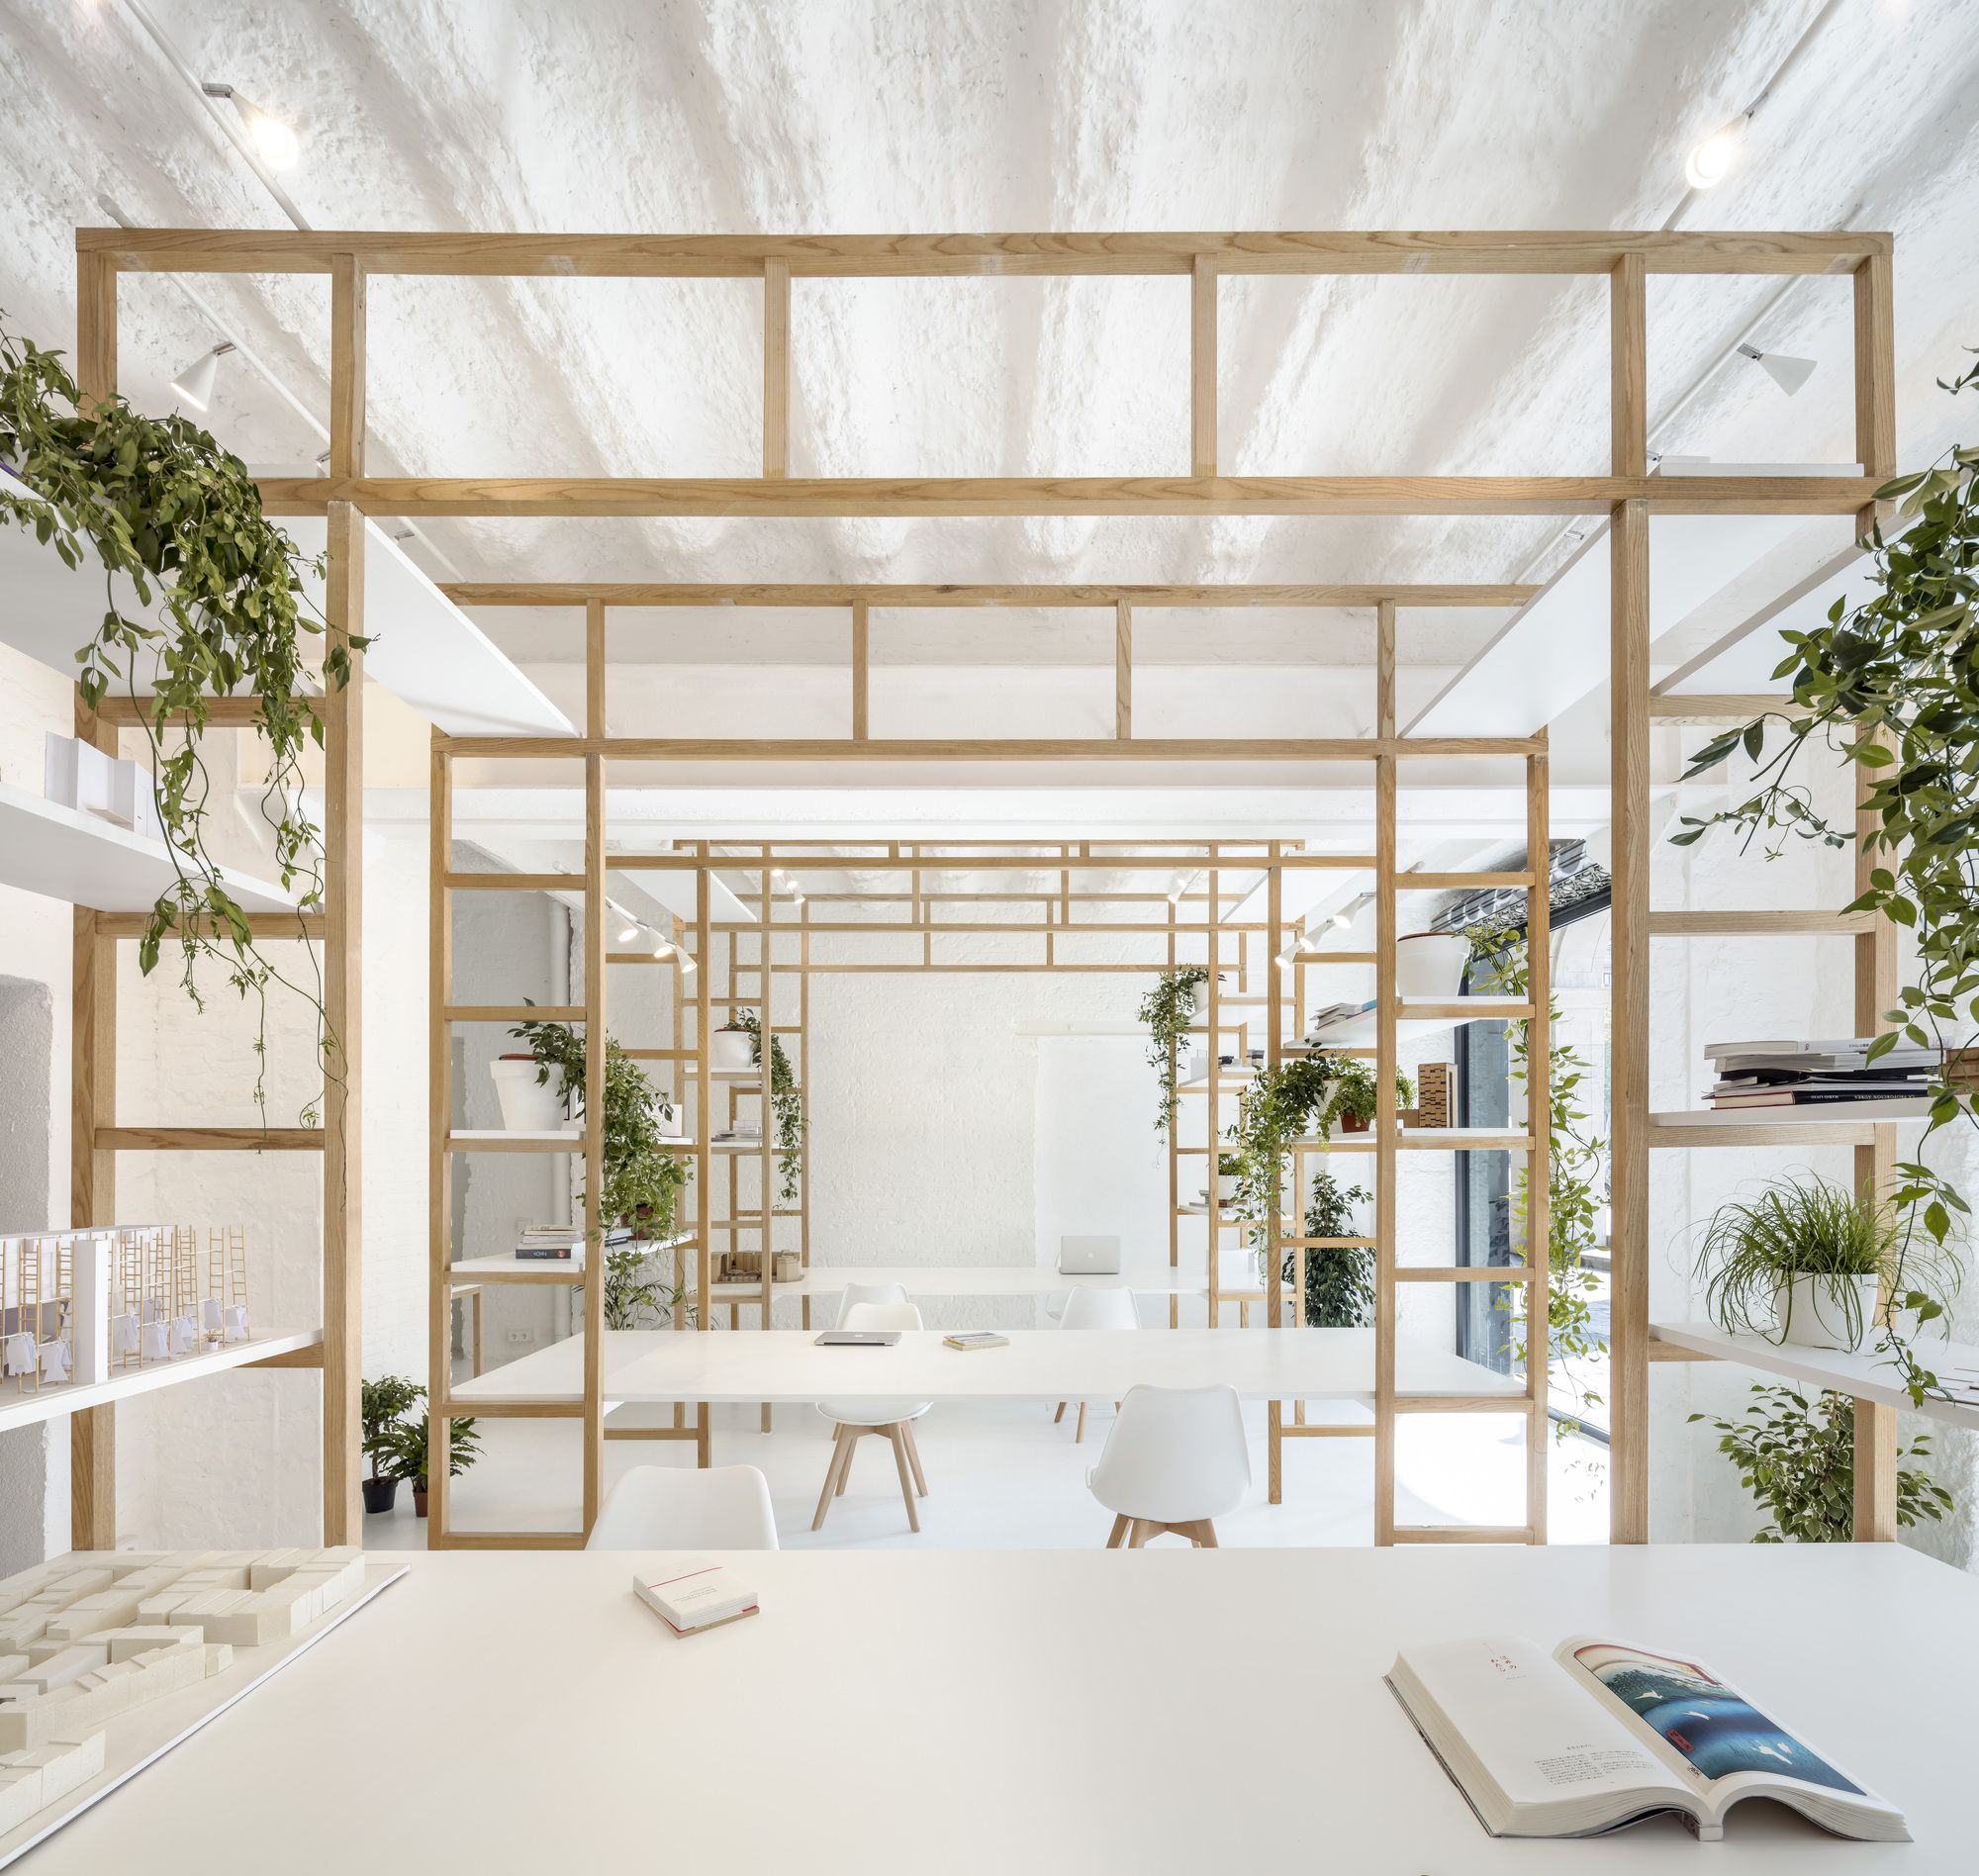 Office of Multidisciplinary Design / Roman Izquierdo Bouldstridge #officedesign